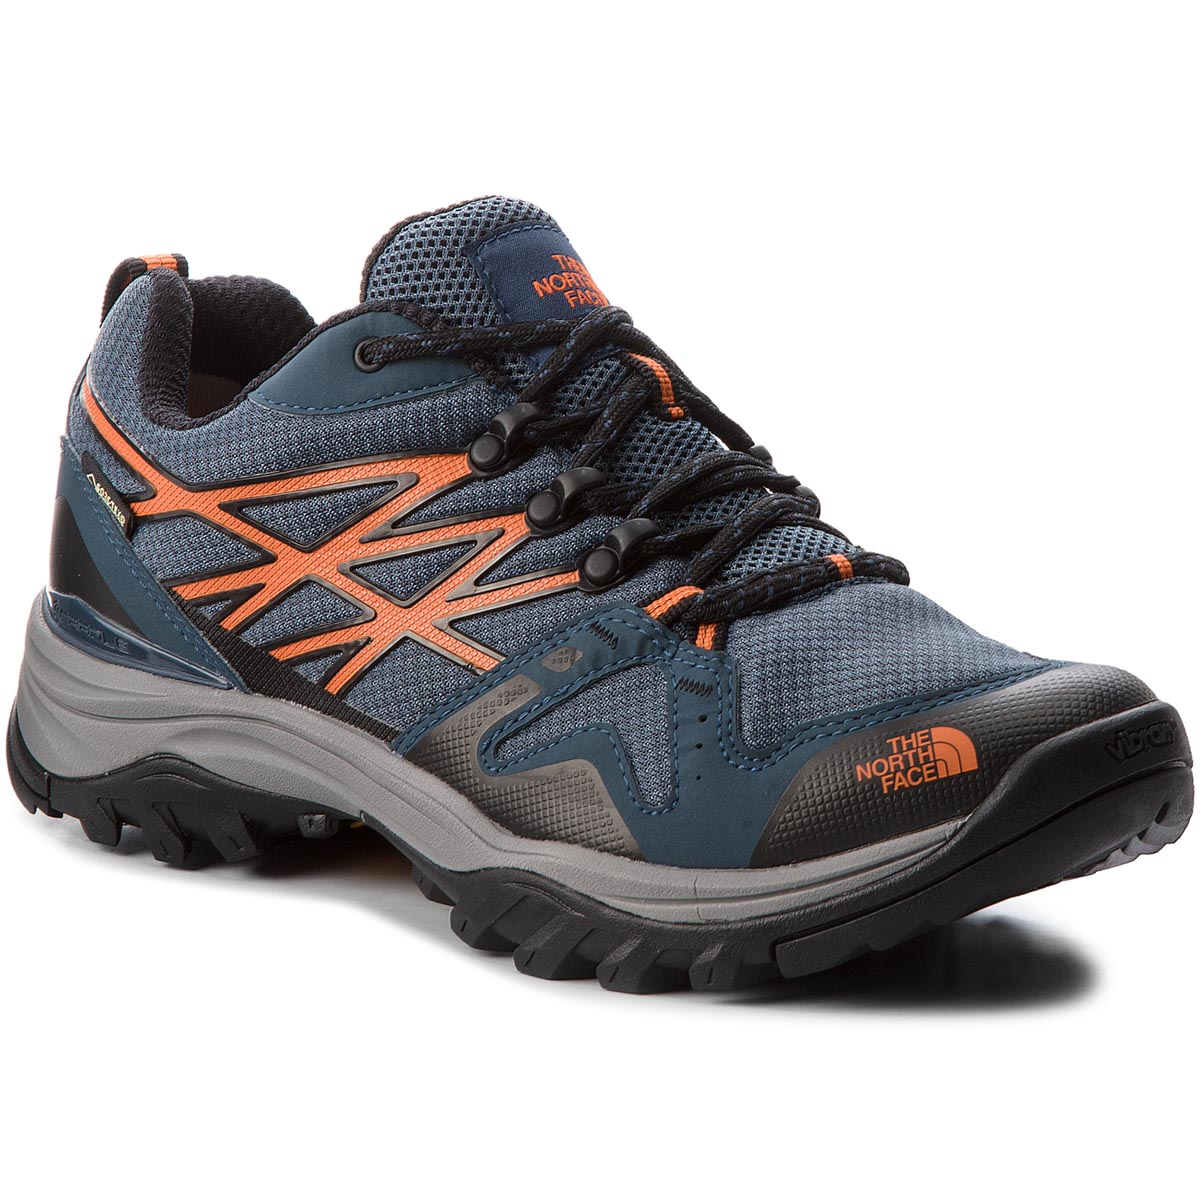 Trekkings THE NORTH FACE - Hedgehog Fastpack Gtx (EU) GORE-TEX NF00CXT35VW Ink Blue/Scarlet Ibis